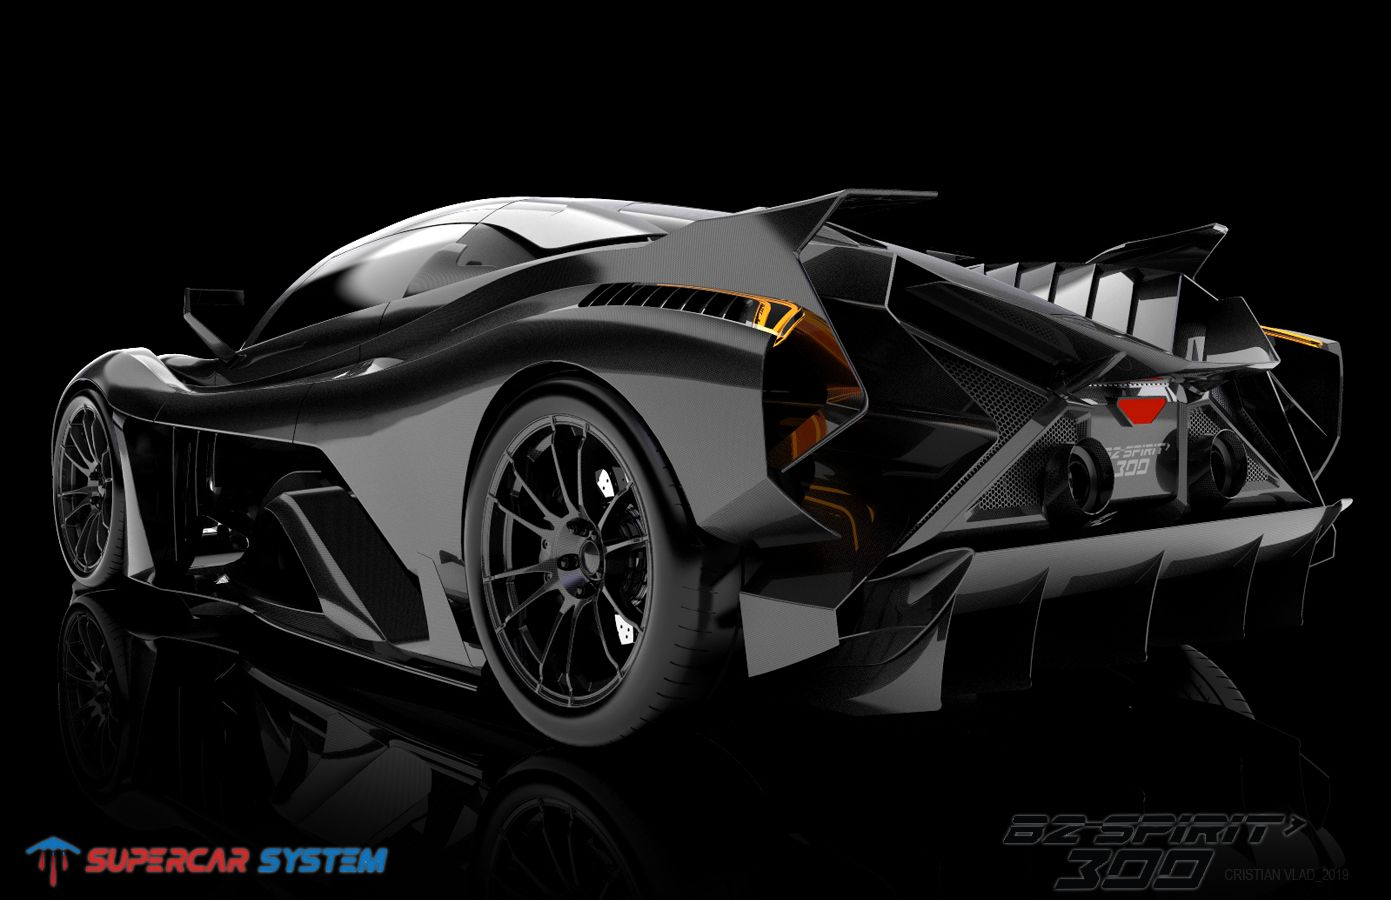 Pin By Supercar System On Supercar System Concepts Super Cars System Sports Car